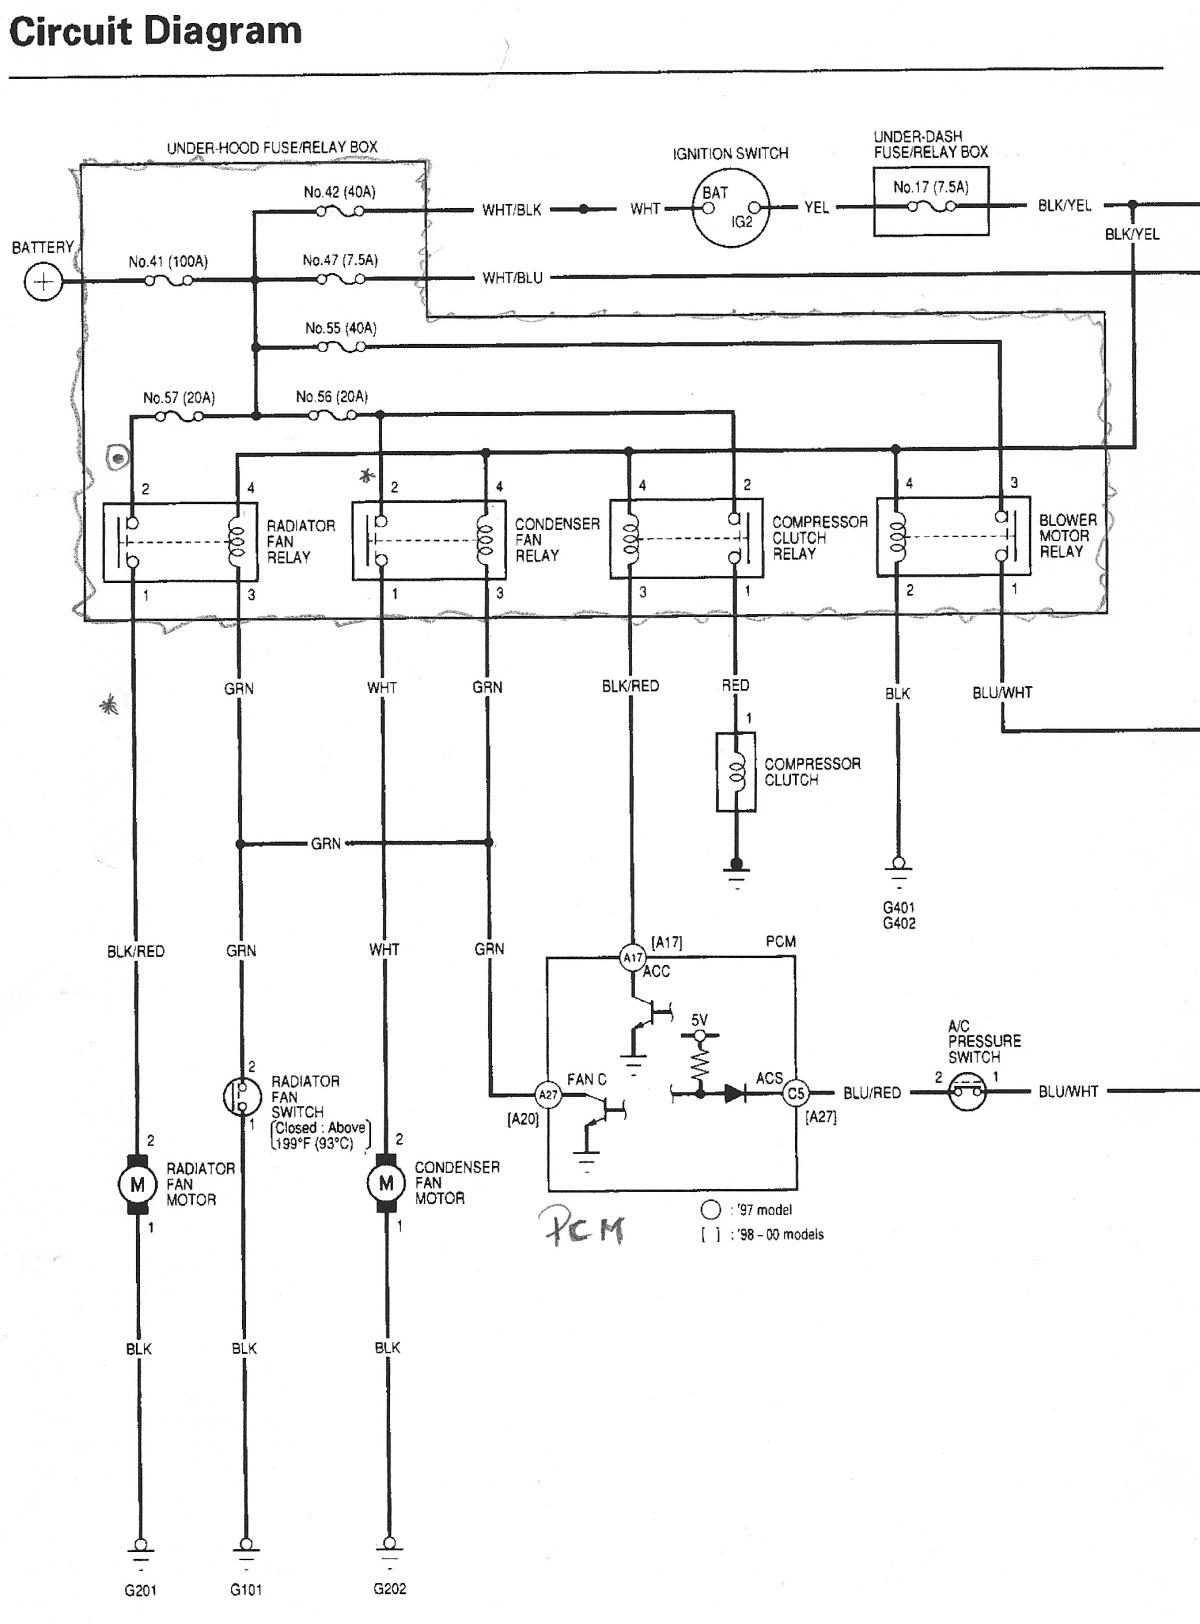 Daewoo Matiz Wiring Diagram Free Download 41 Images Central Locking Shrutiradio Honda Crv Fuse Box Location Diagrams For 96 Accord Air Conditioner